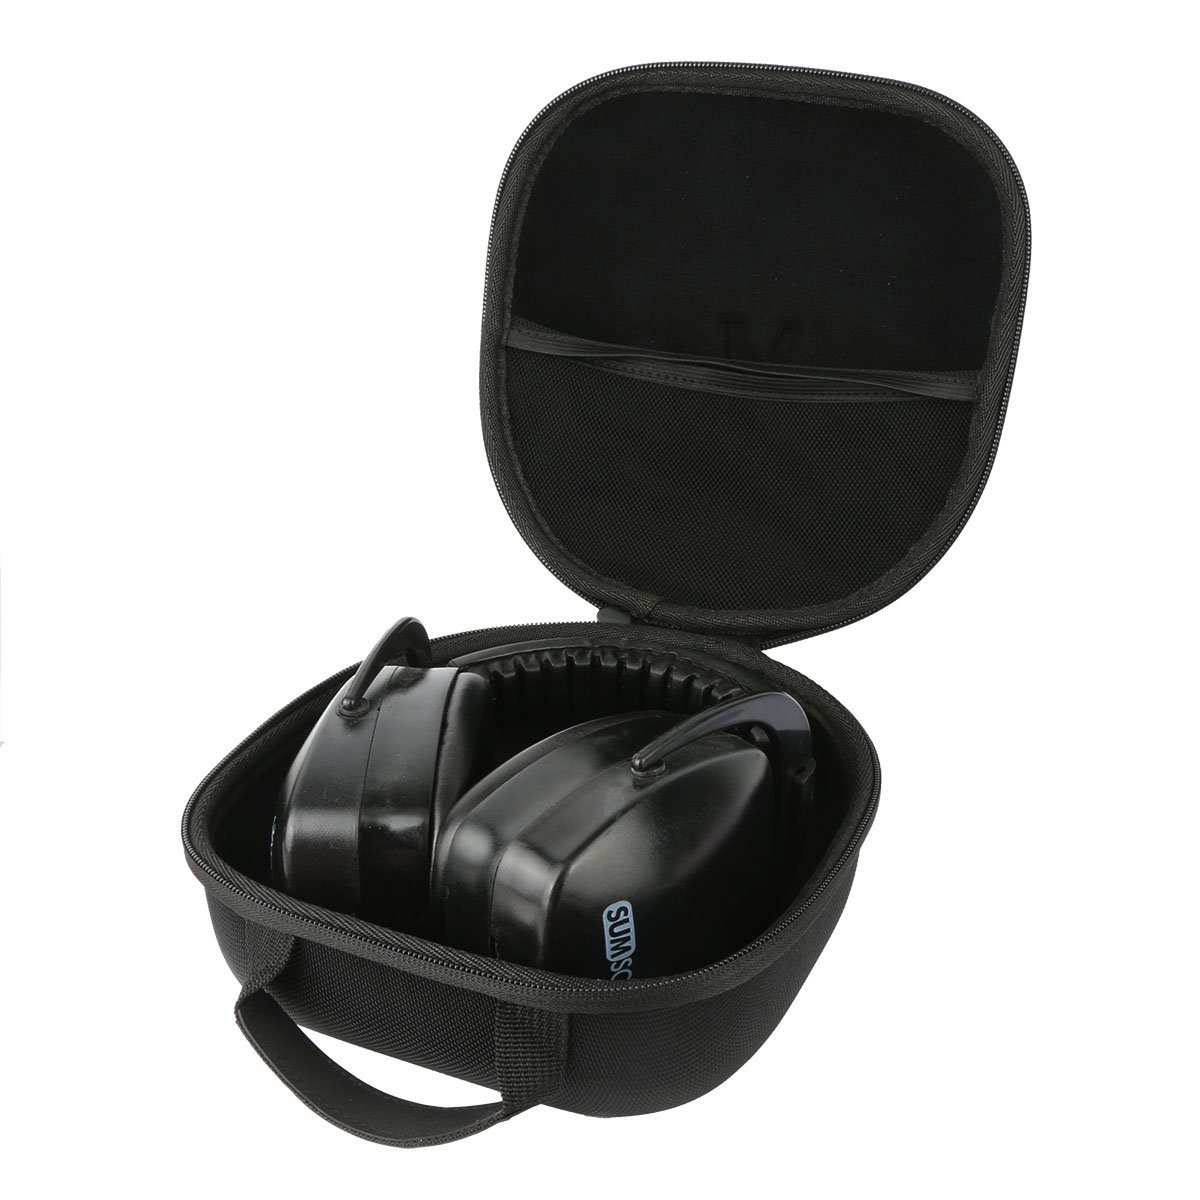 Cheap Logitech Usb Sound, find Logitech Usb Sound deals on